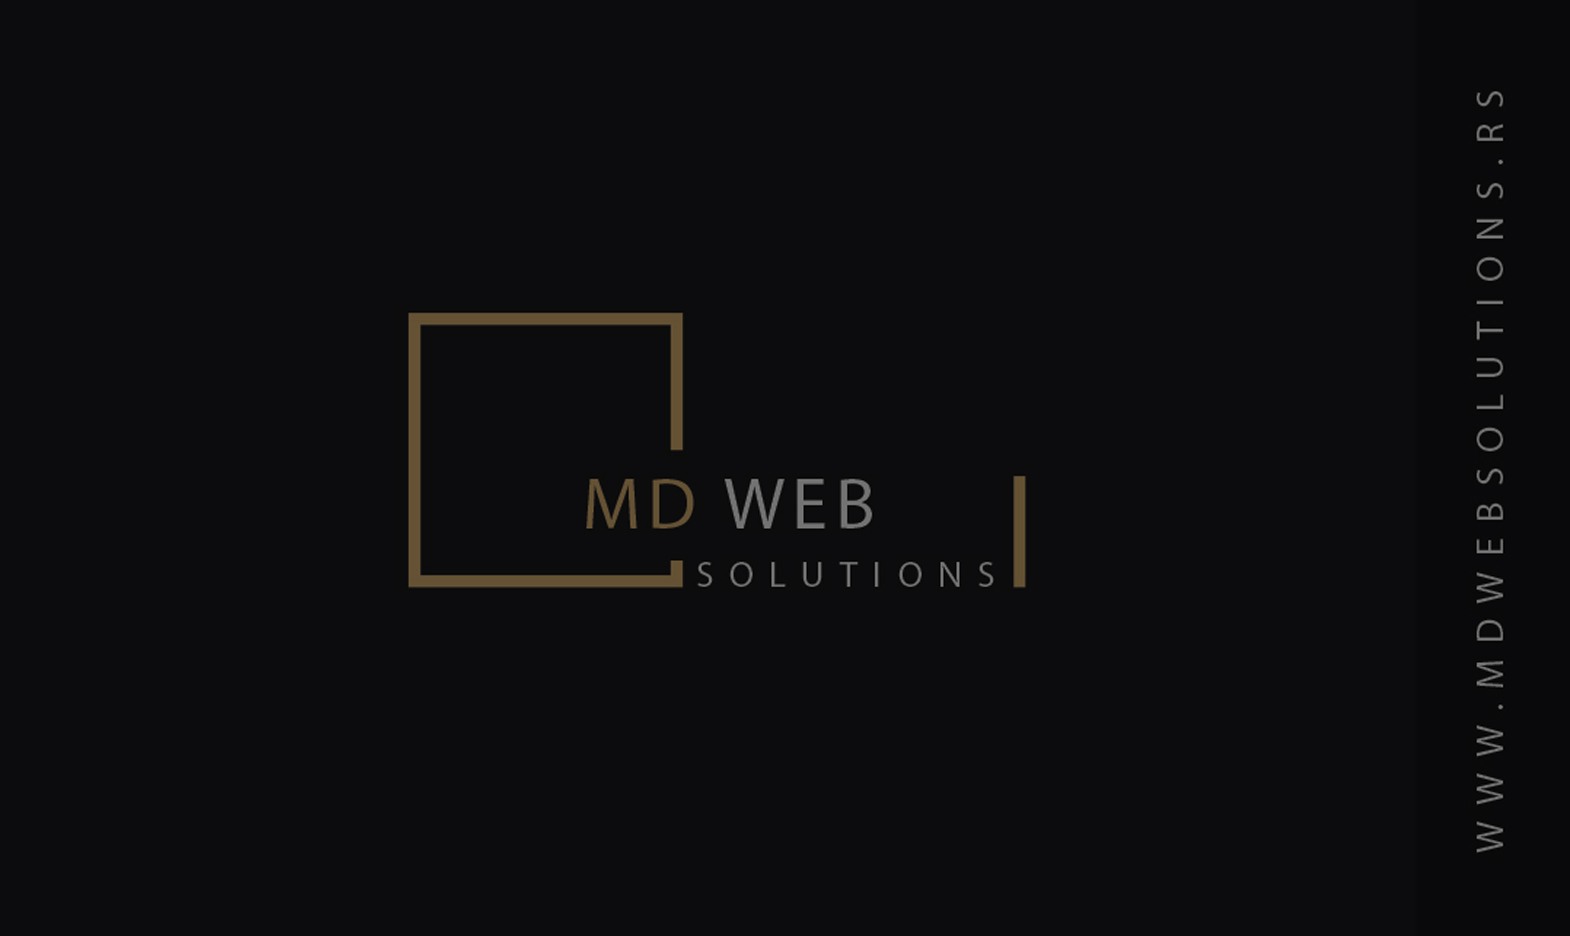 MD Web solutions